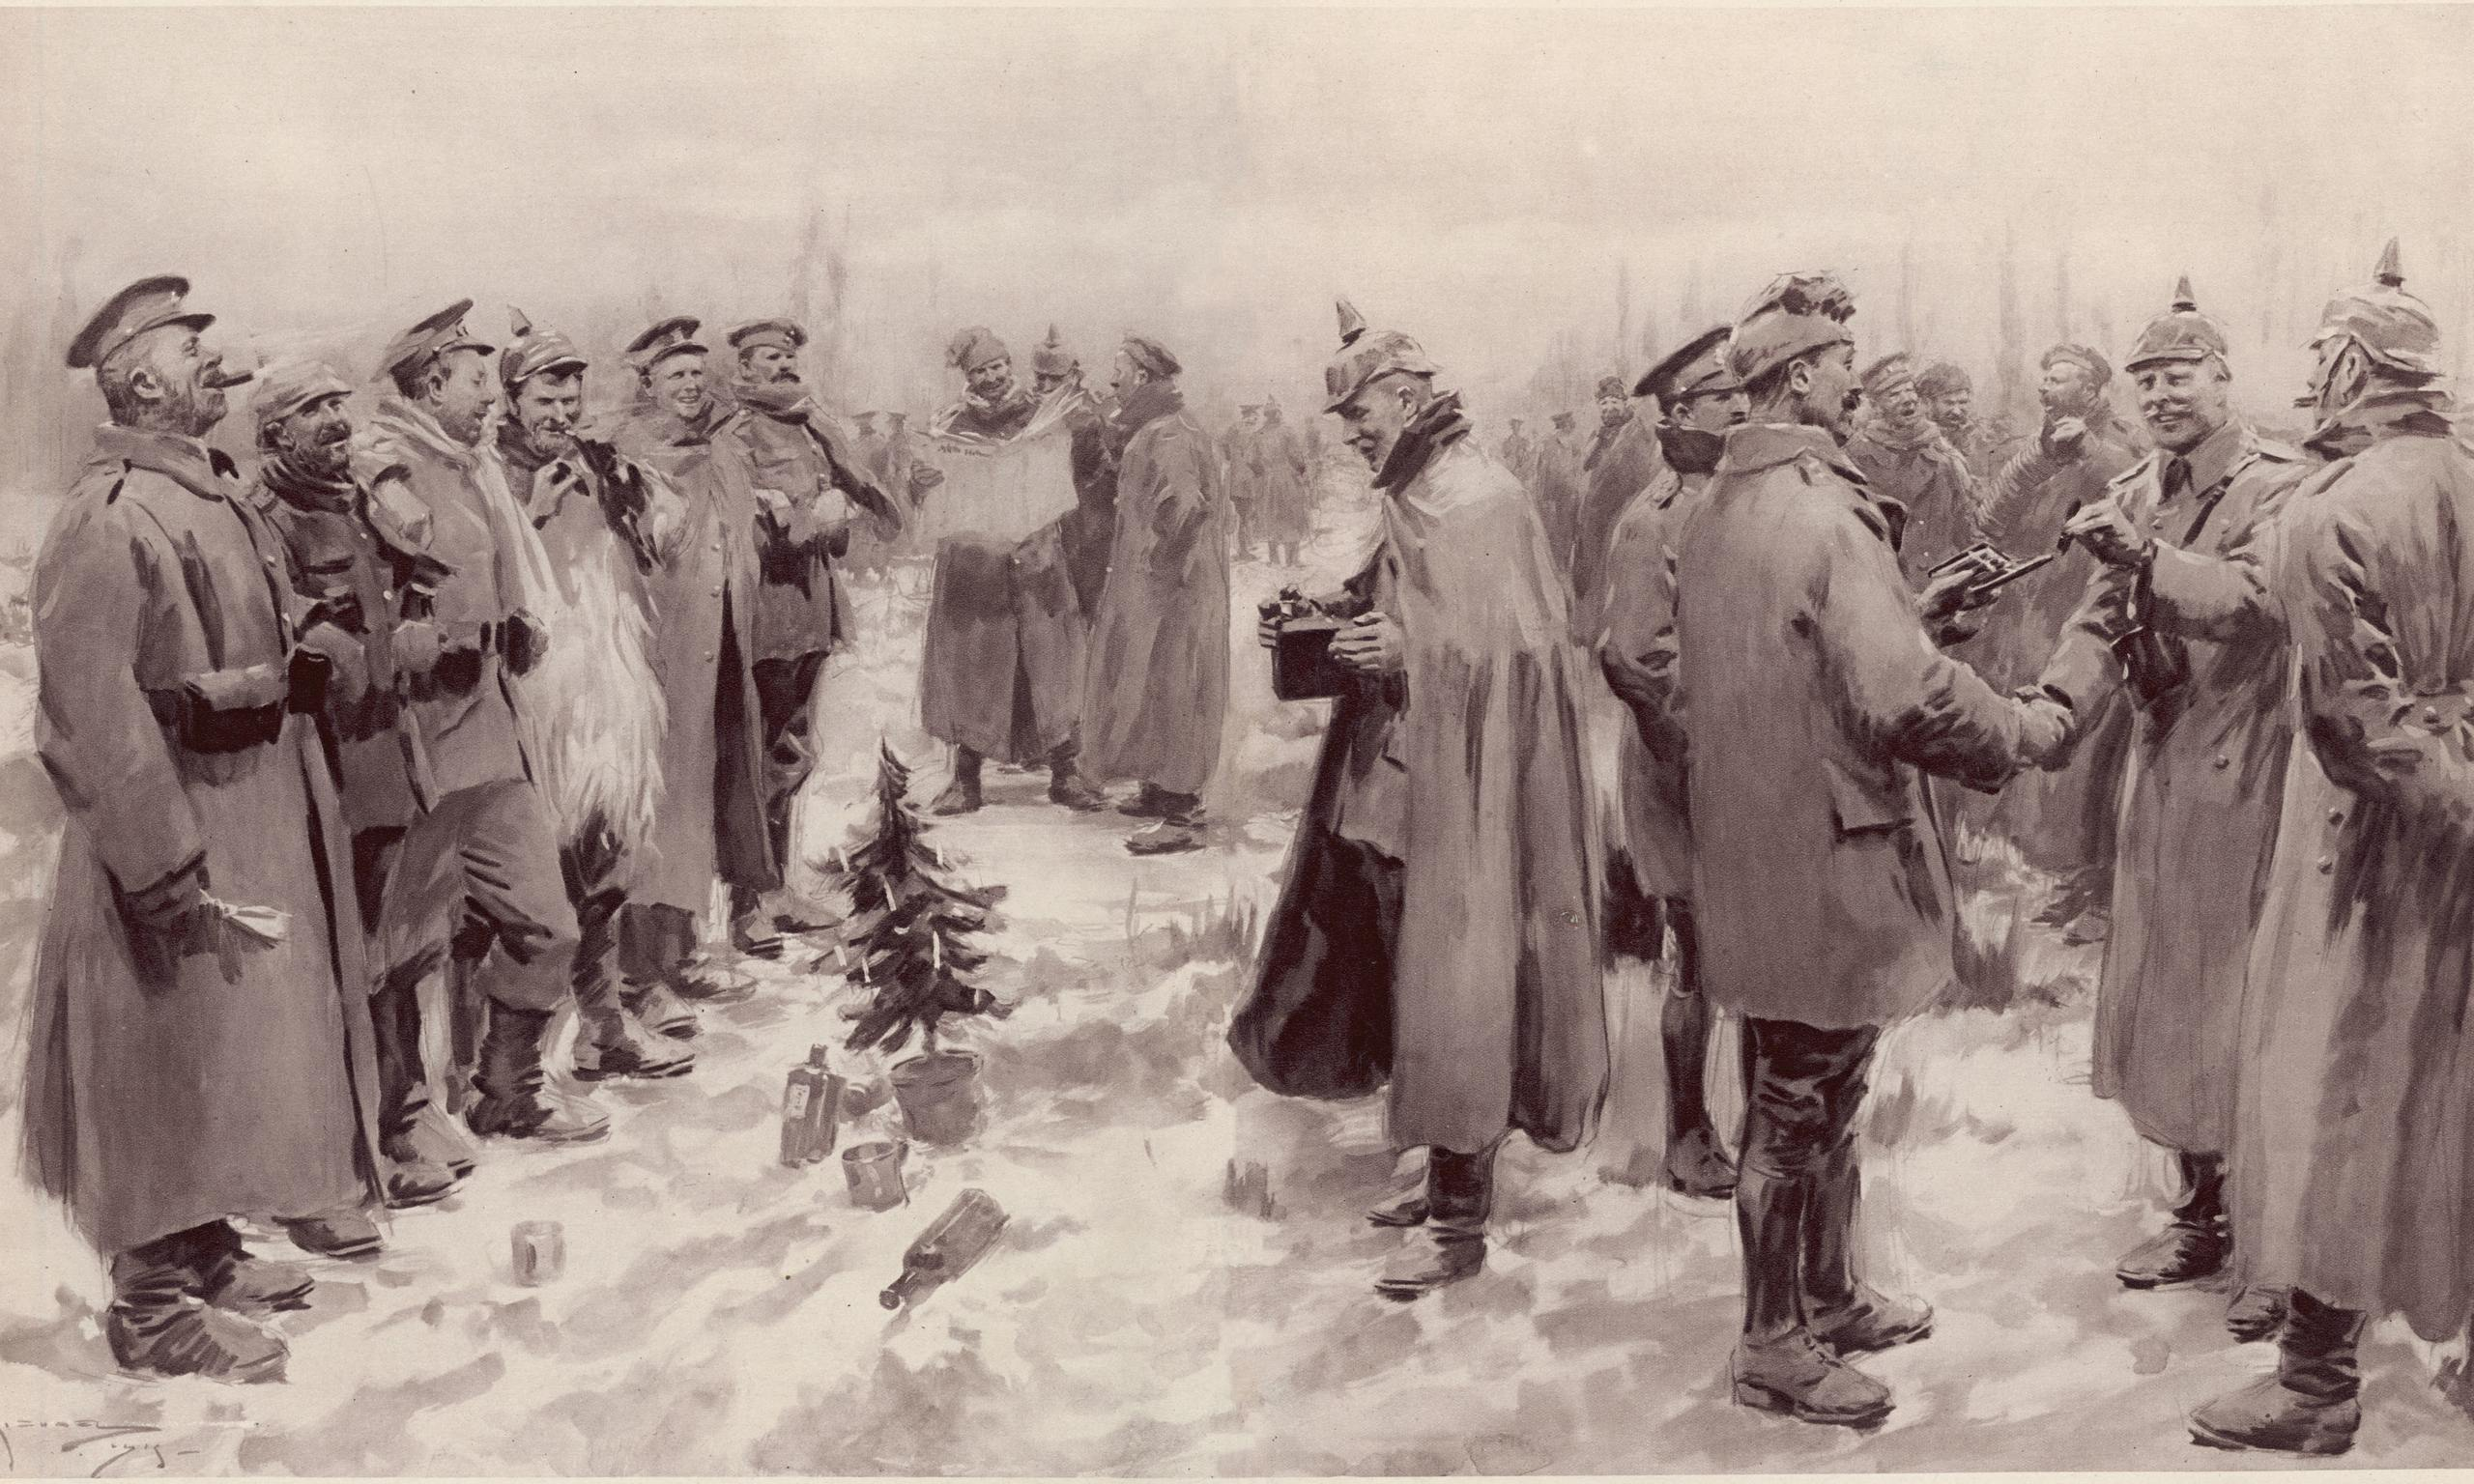 Illustration from the 1915 London News: Allied and German soldiers fraternizing in no-man's-land.